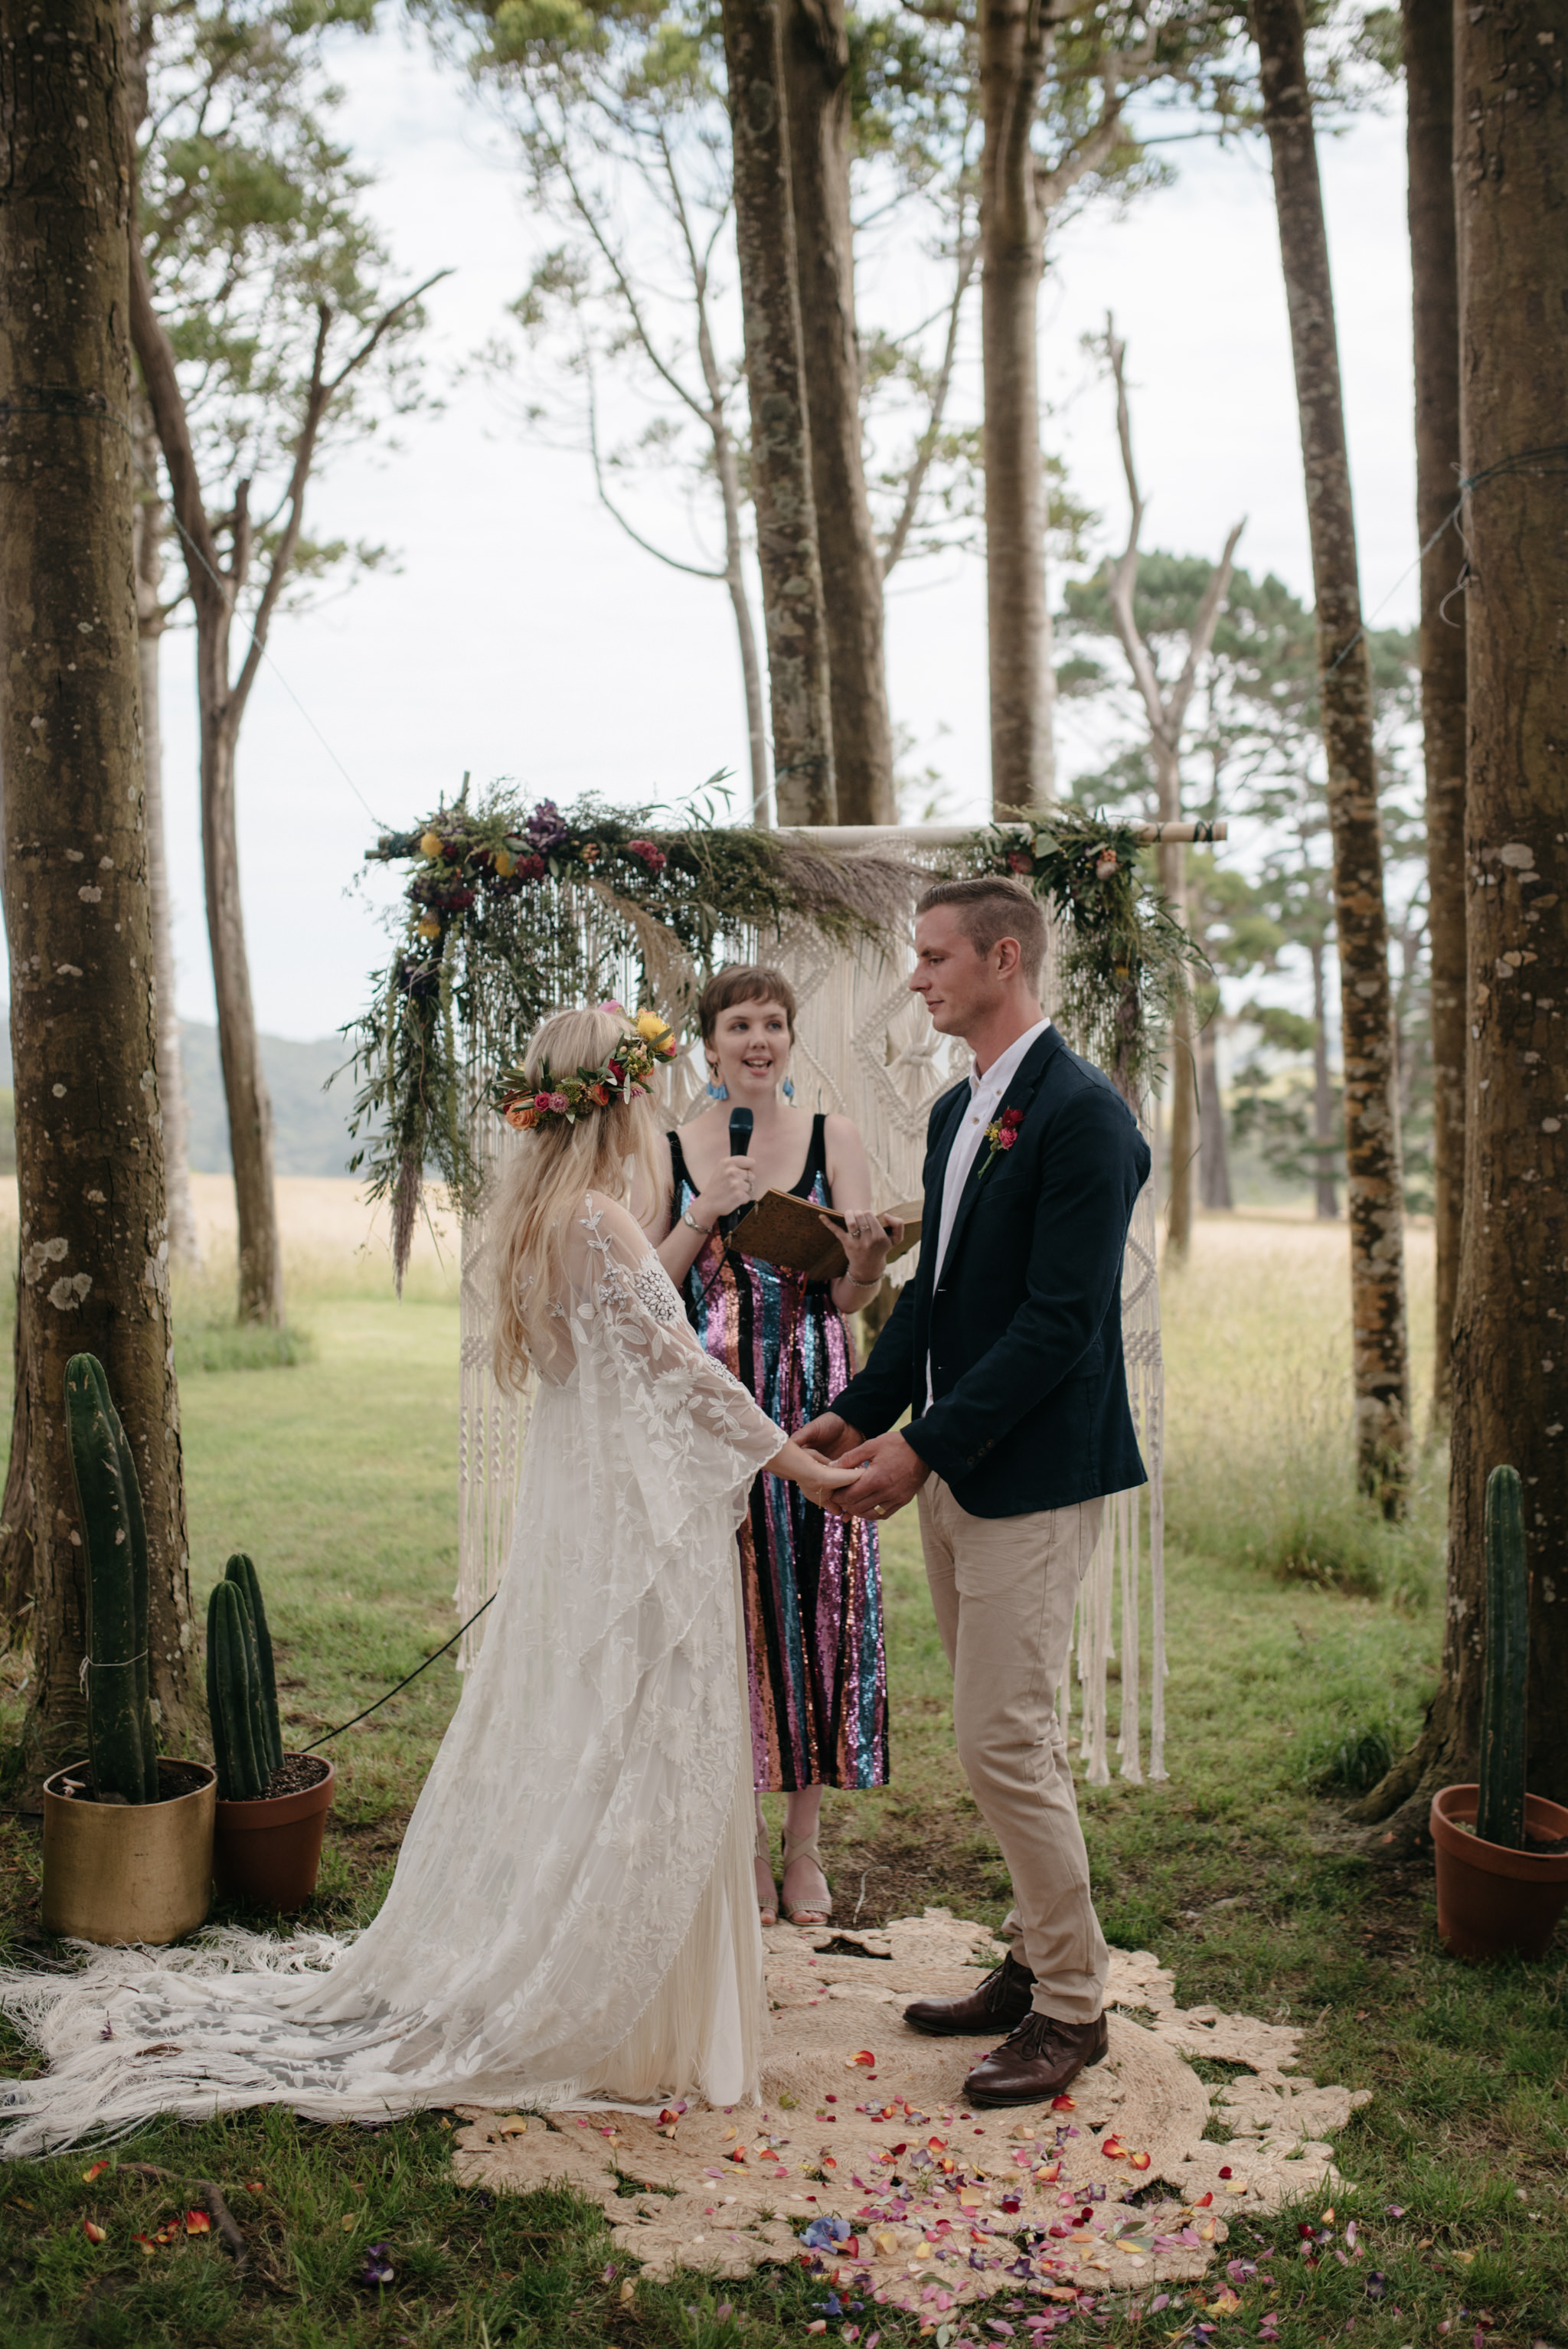 Josie and Ryan EPHEMERAL CREATIVE Jonkers Farm New Zealand Wedding Mexican wedding vibes